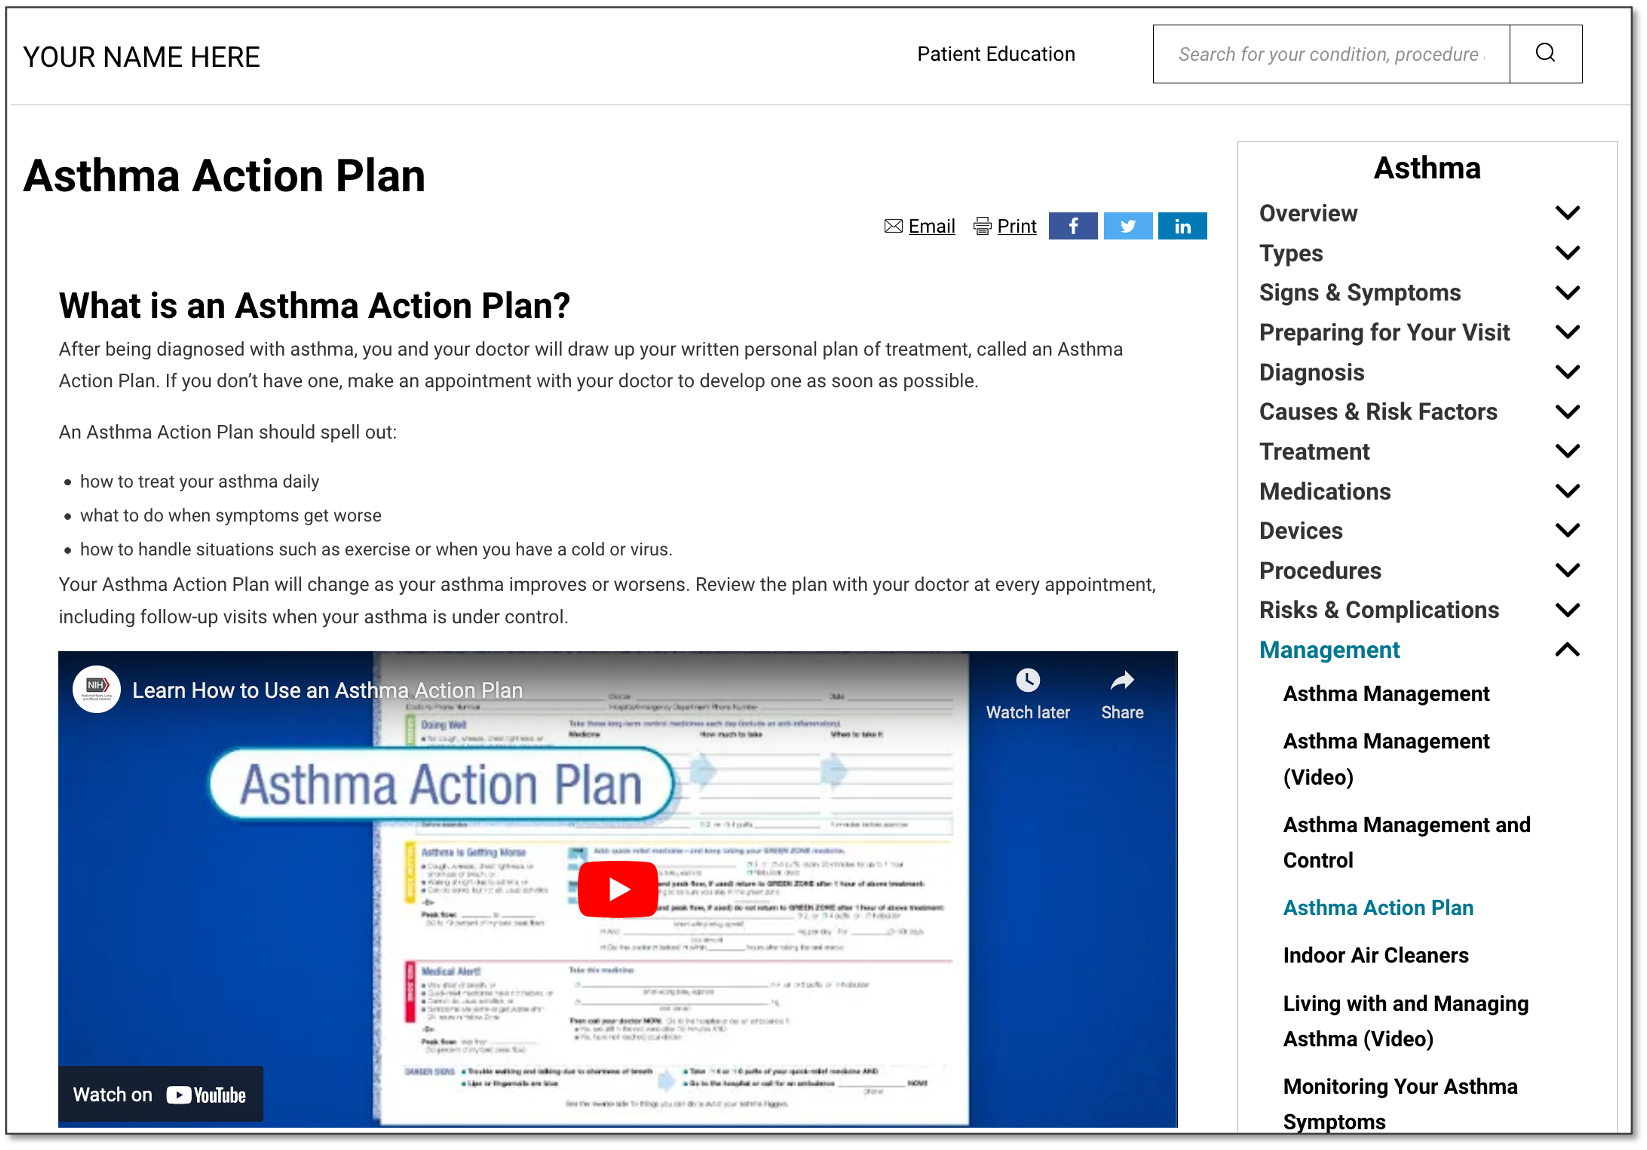 Asthma Action Plan Patient Education